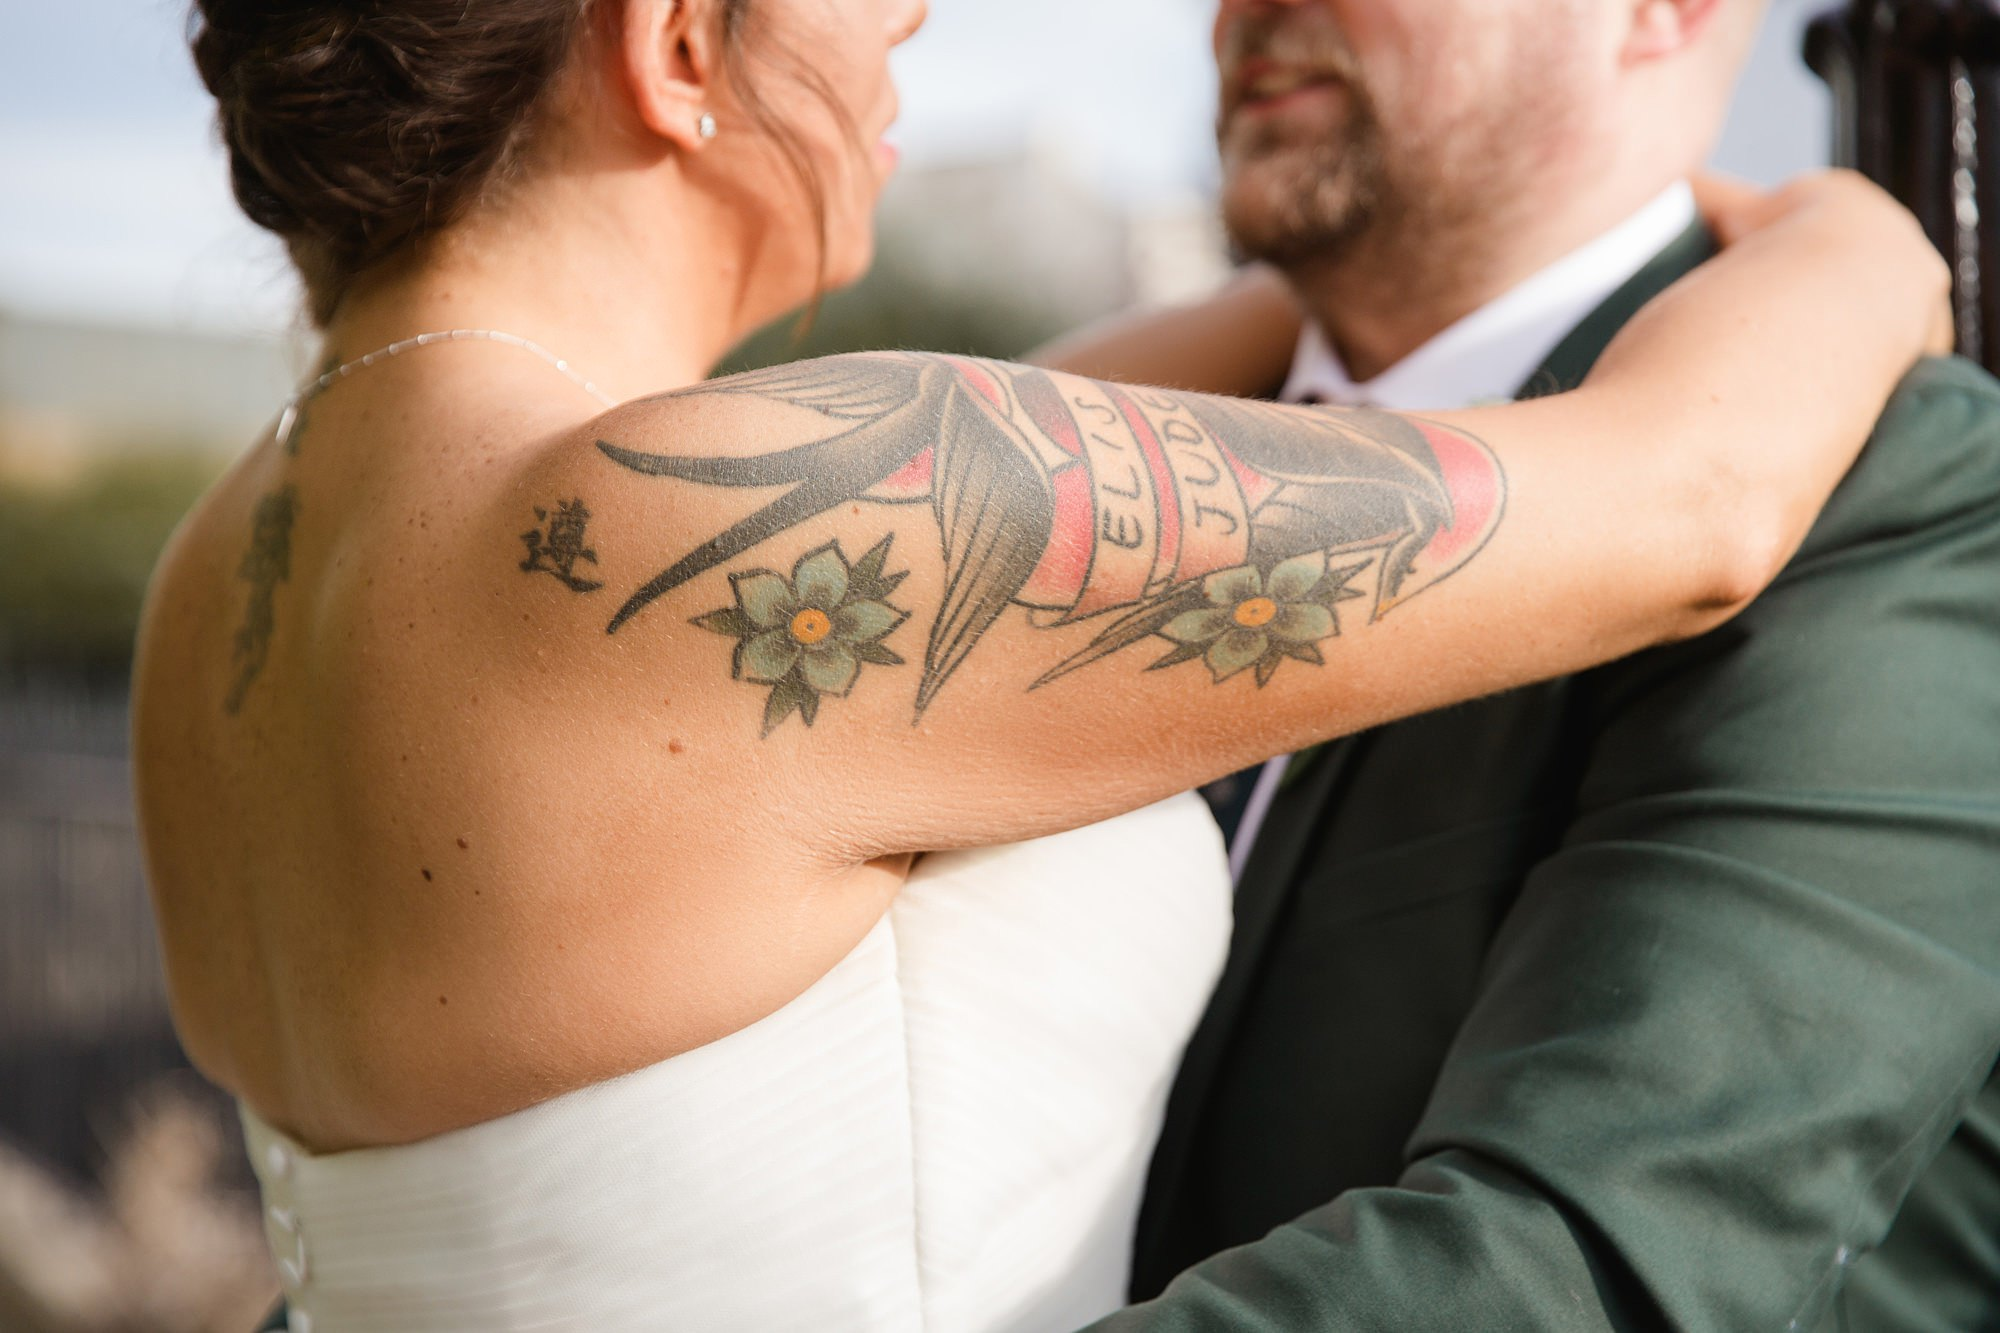 Prince albert camden wedding bride's tattoo